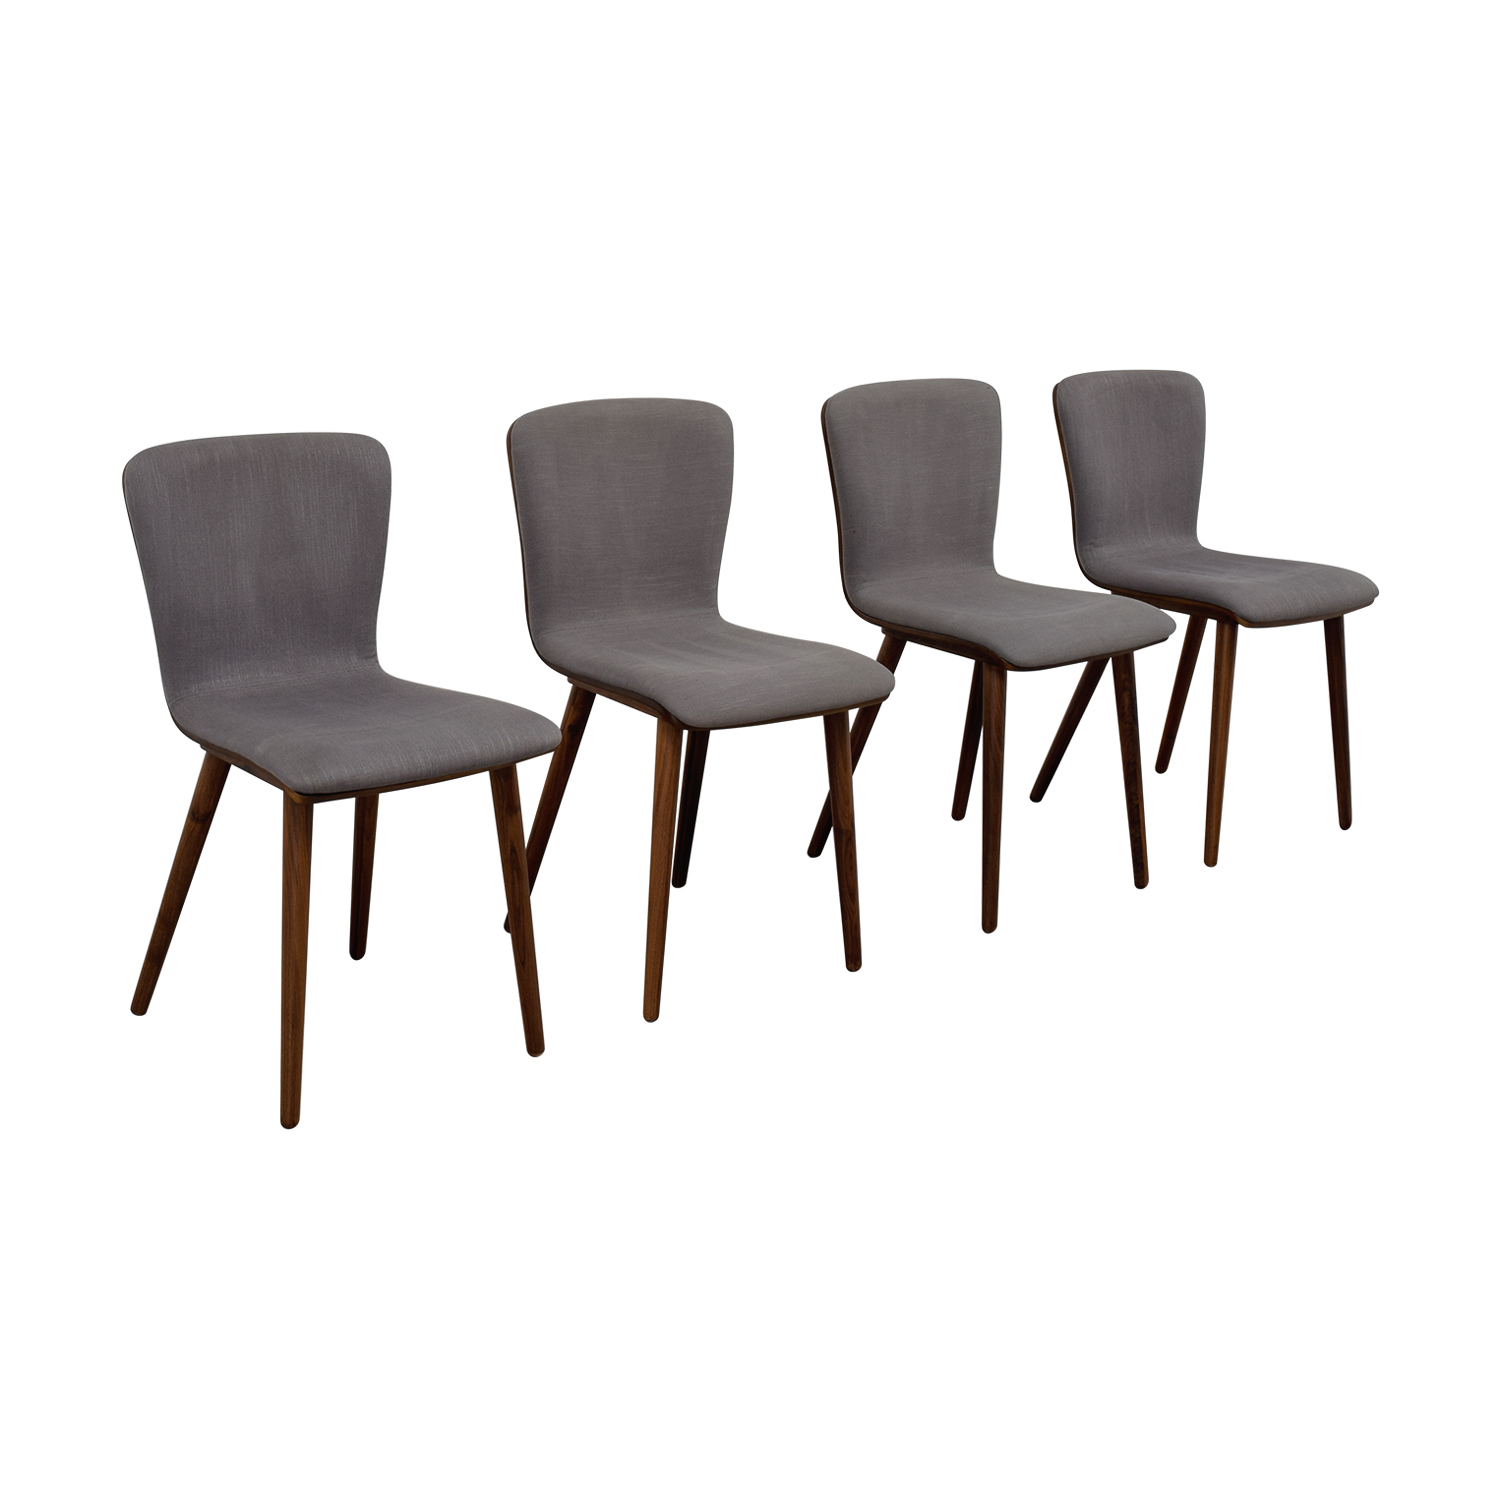 buy Article Article Sede Thunder Gray Walnut Dining Chairs online